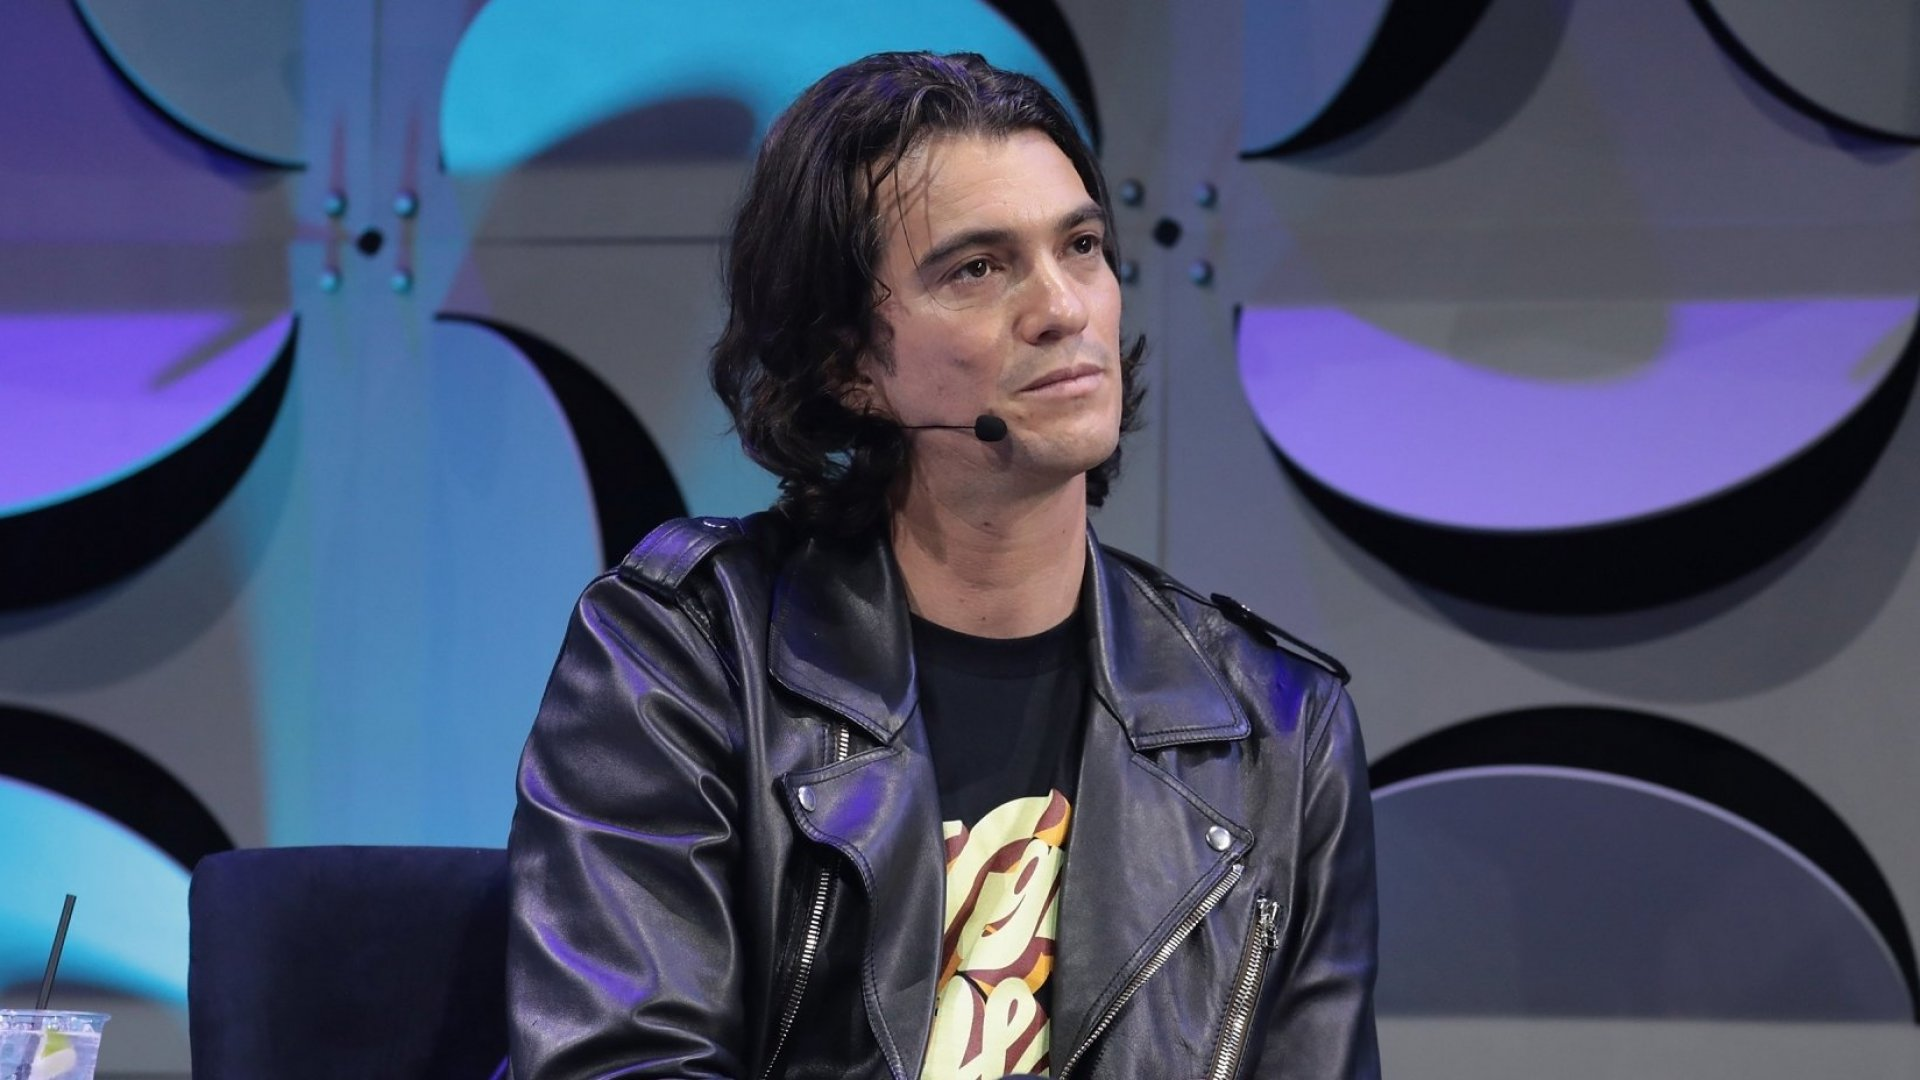 Judge, Co-founder and CEO of WeWork, Adam Neumann appears on stage as WeWork presents Creator Awards Global Finals at the Theater At Madison Square Garden on January 17, 2018 in New York City. (Photo by Cindy Ord/Getty Images for WeWork)